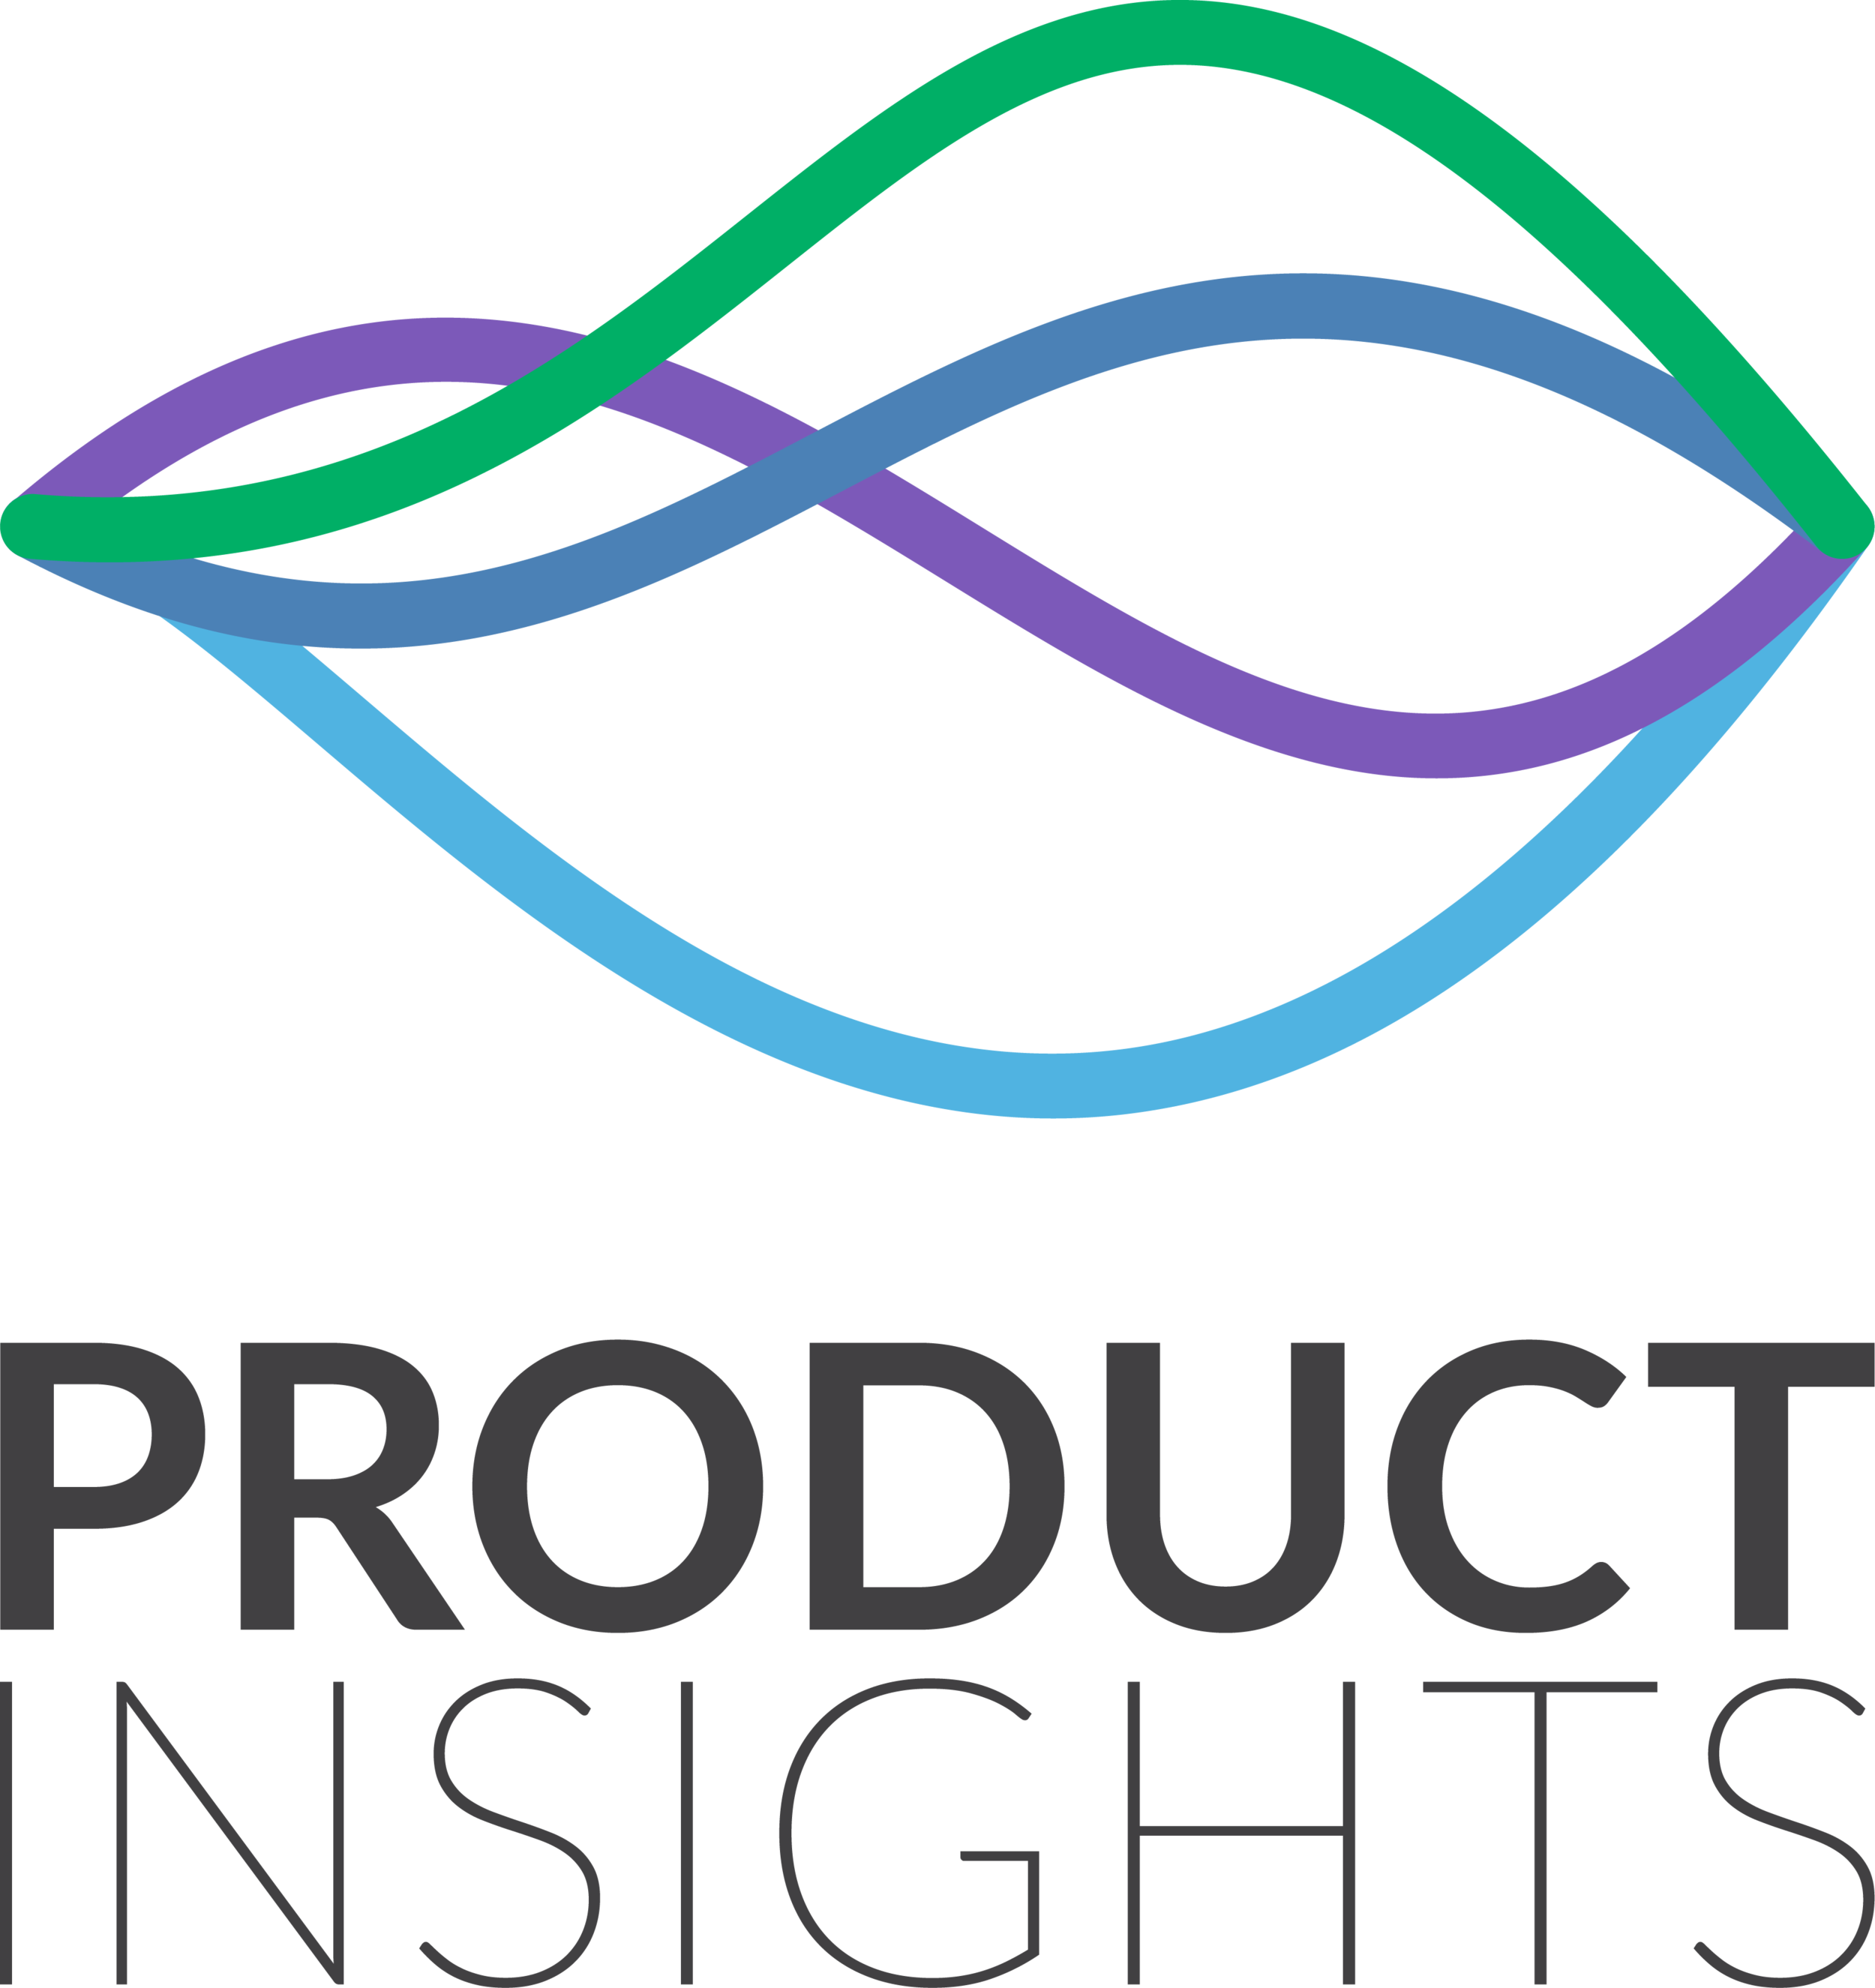 Product Insights-RGB-CMYK-full color.png